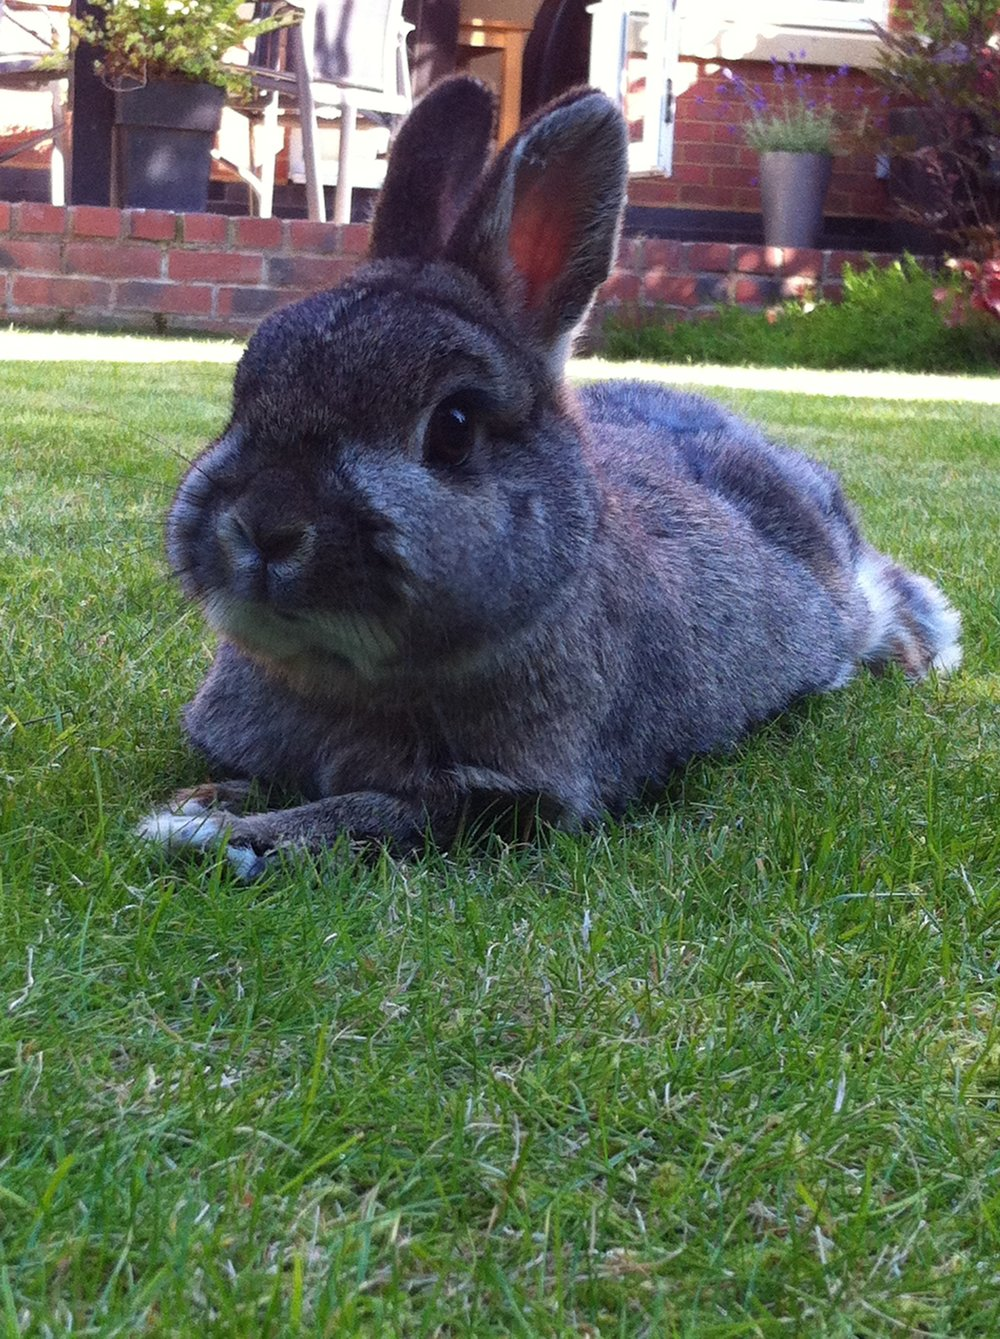 Bunny Spends Bunday Relaxing on the Grass